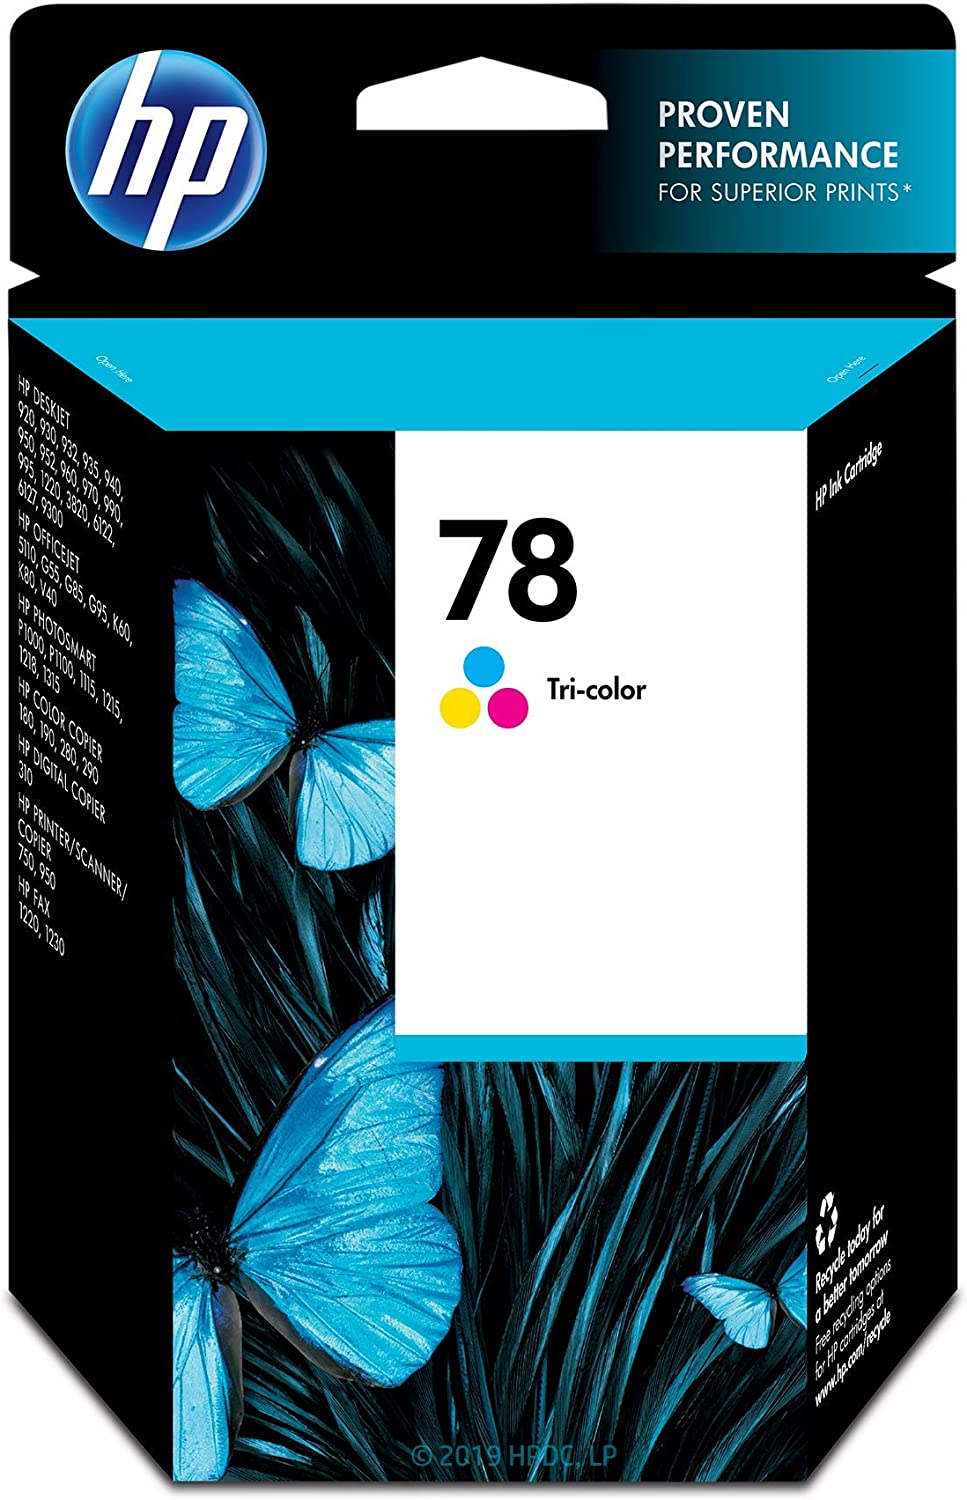 HP 78 | Ink Cartridge | Tri-color | C6578DN | DISCONTINUED BY MANUFACTURER